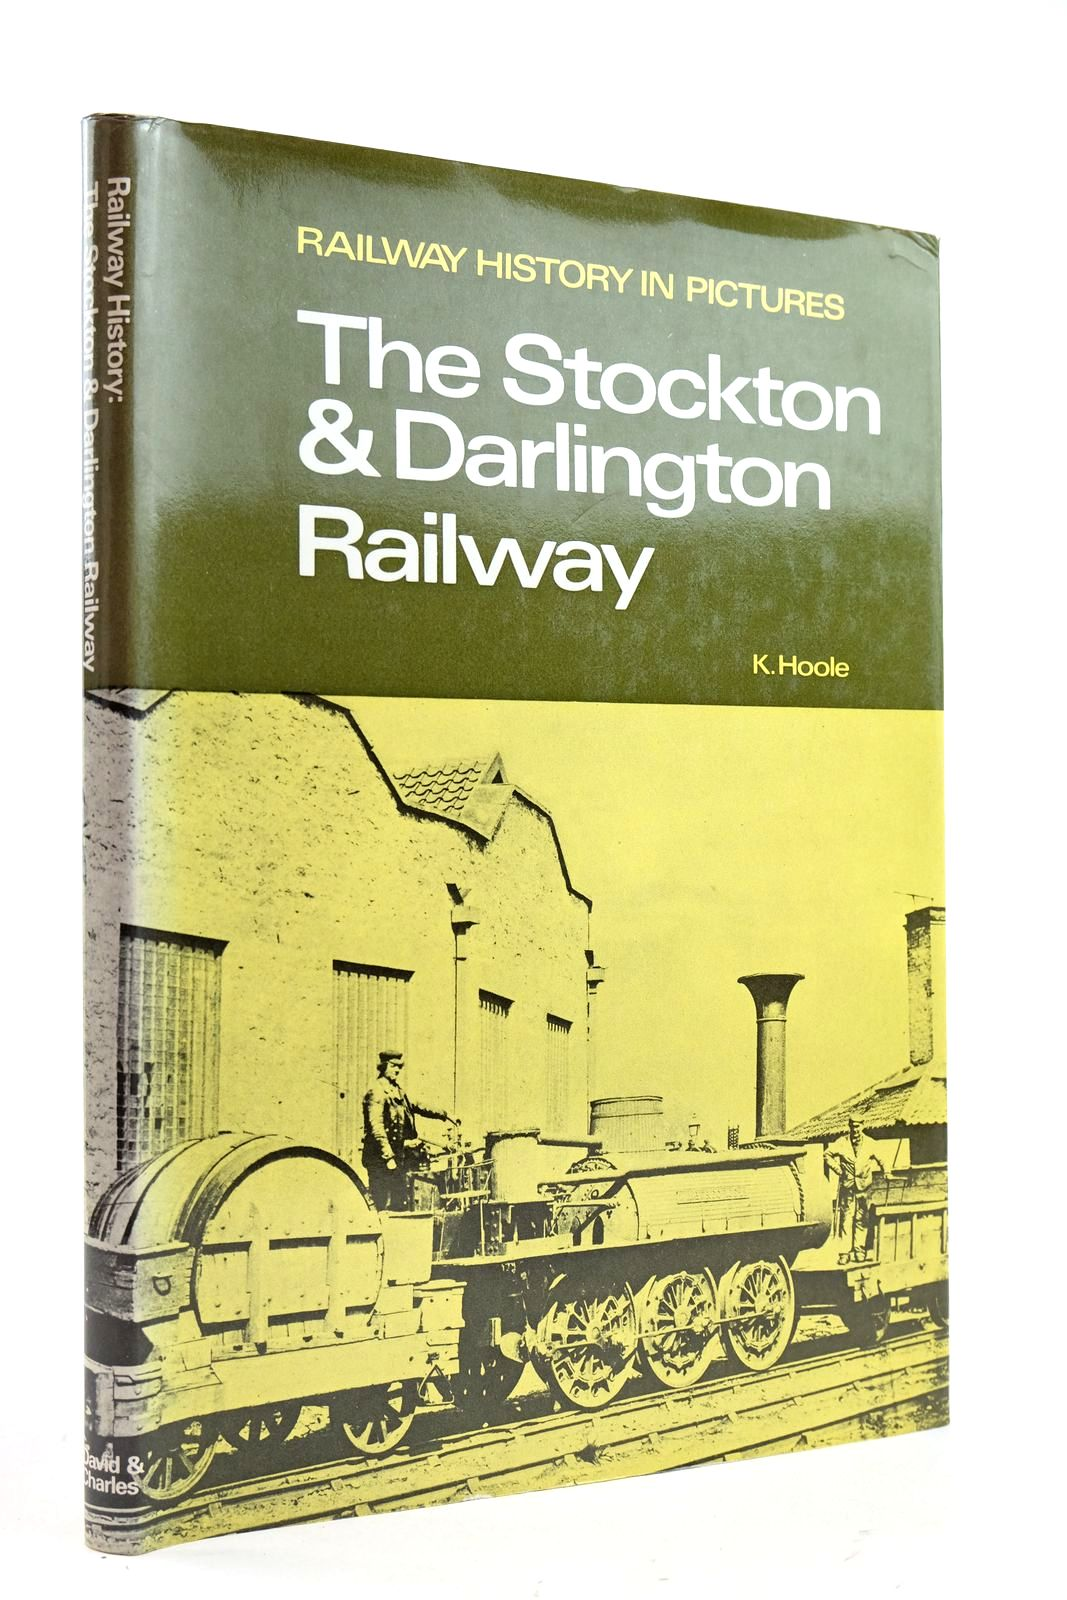 Photo of RAILWAY HISTORY IN PICTURES: THE STOCKTON & DARLINGTON RAILWAY written by Hoole, K. published by David & Charles (STOCK CODE: 2133063)  for sale by Stella & Rose's Books